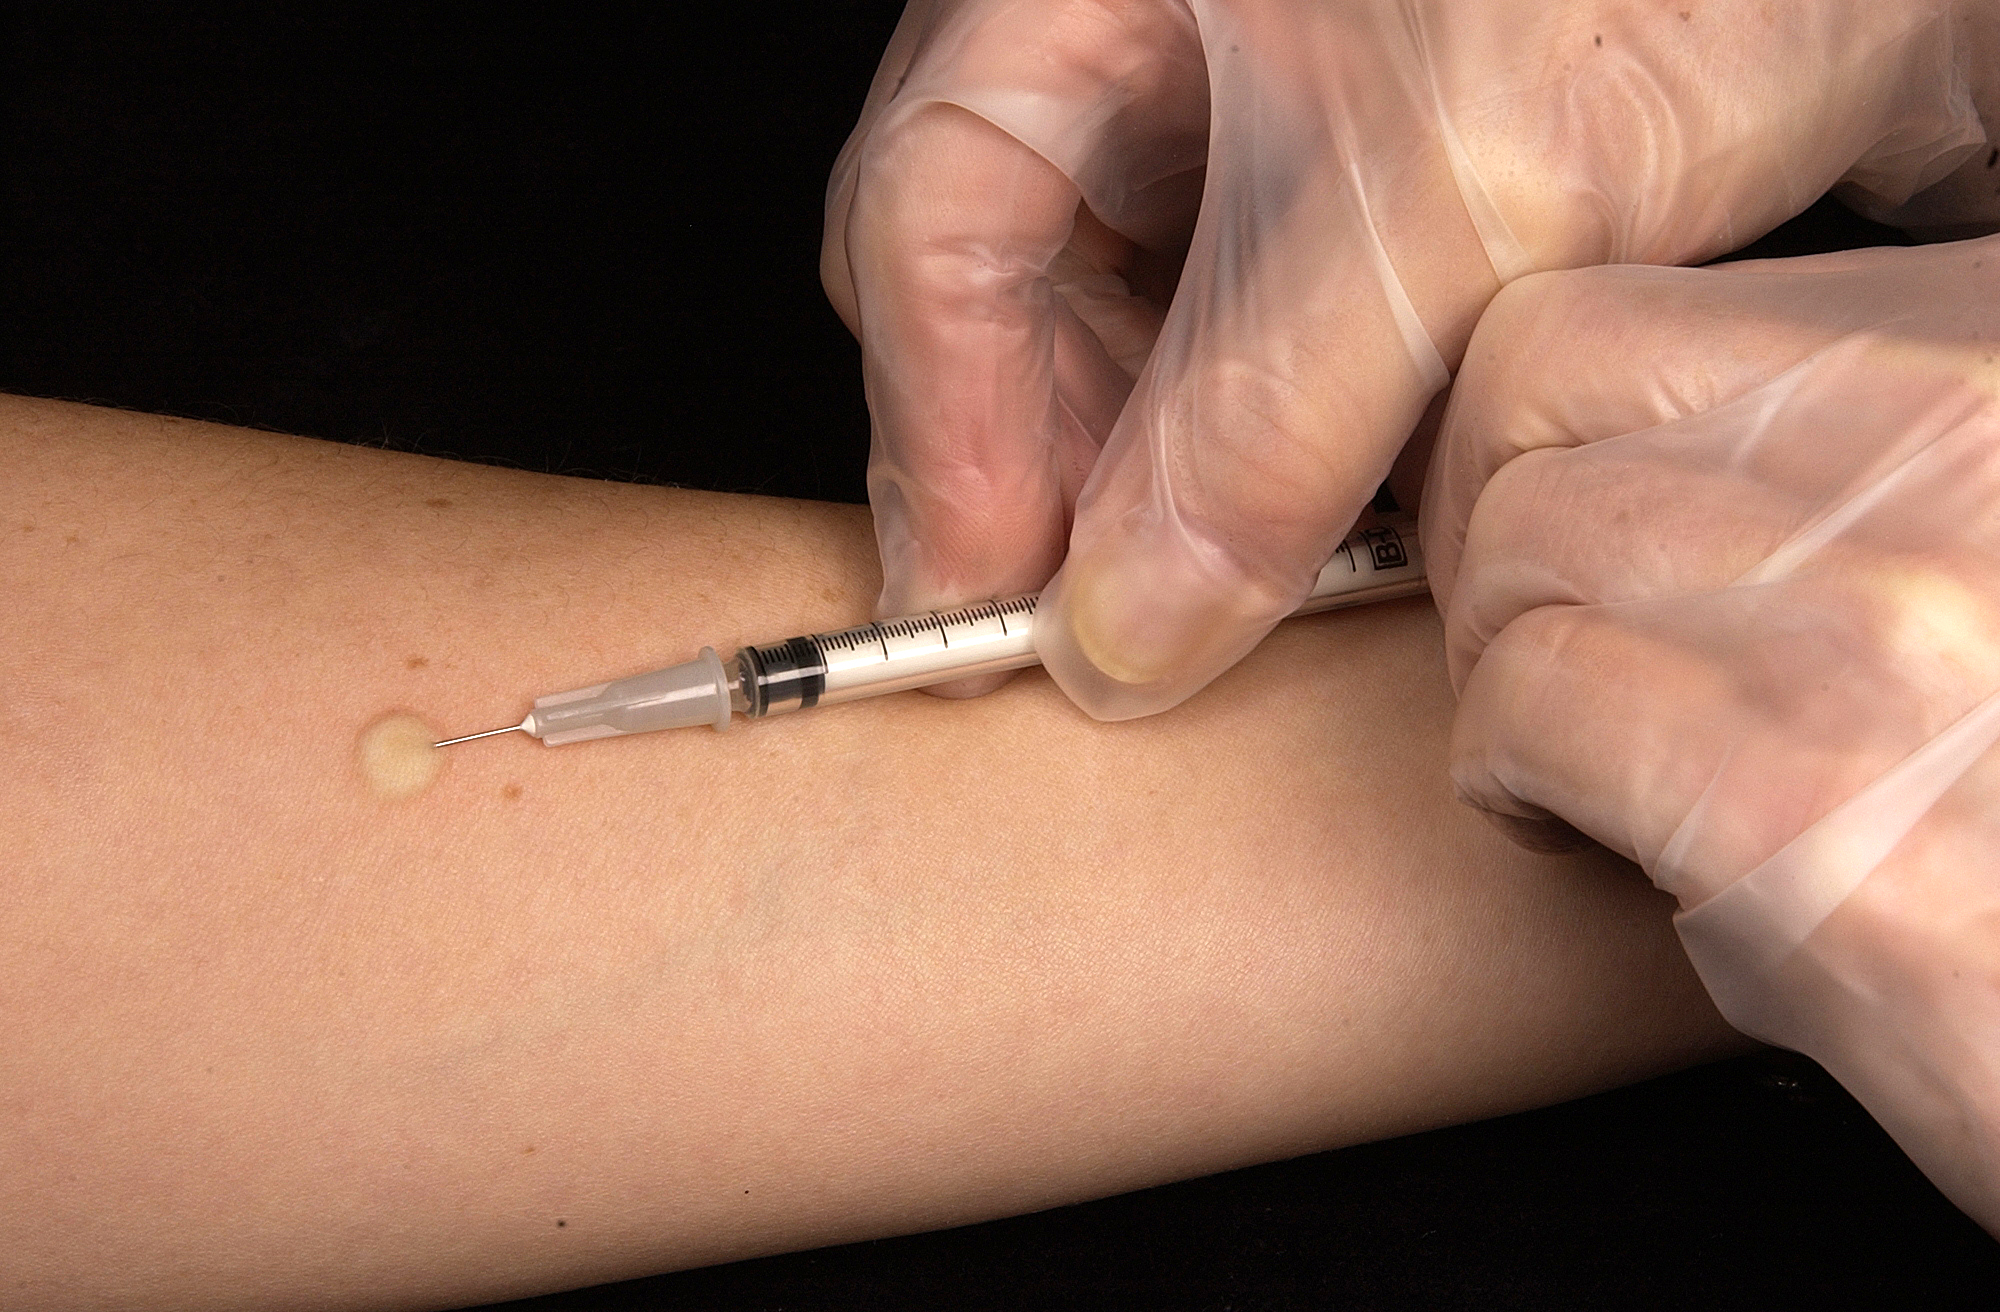 File:Mantoux tuberculin skin test.jpg